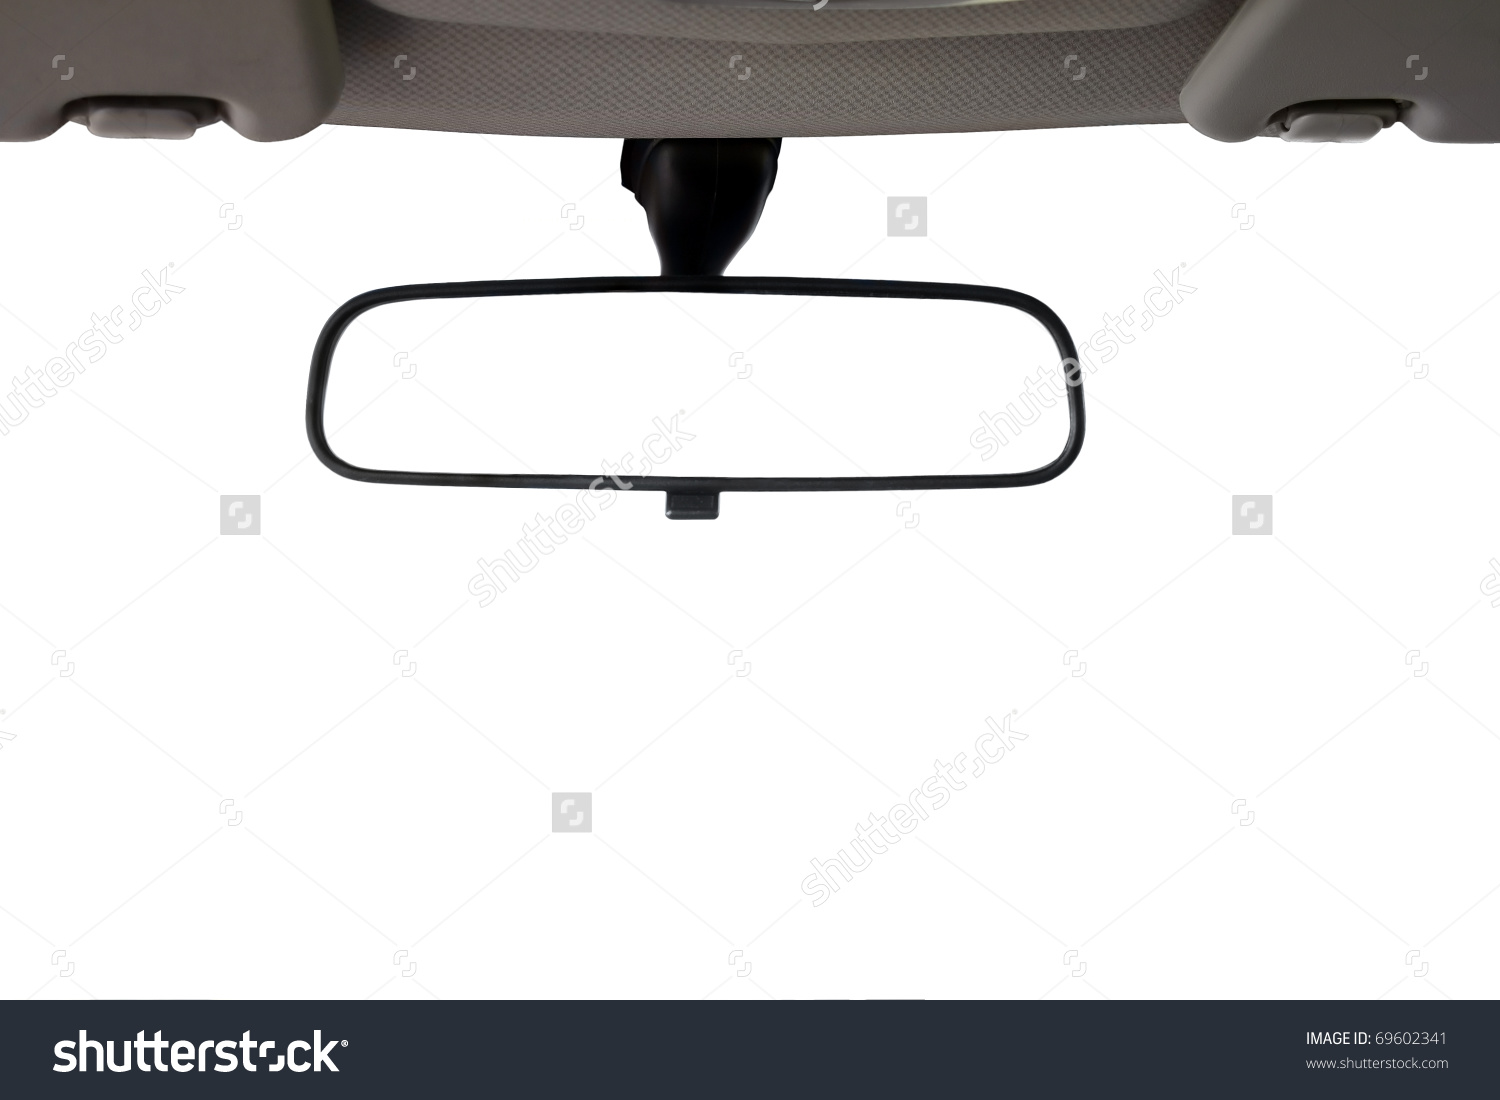 Car Rear View Mirror Isolated Creative Stock Photo 69602341.